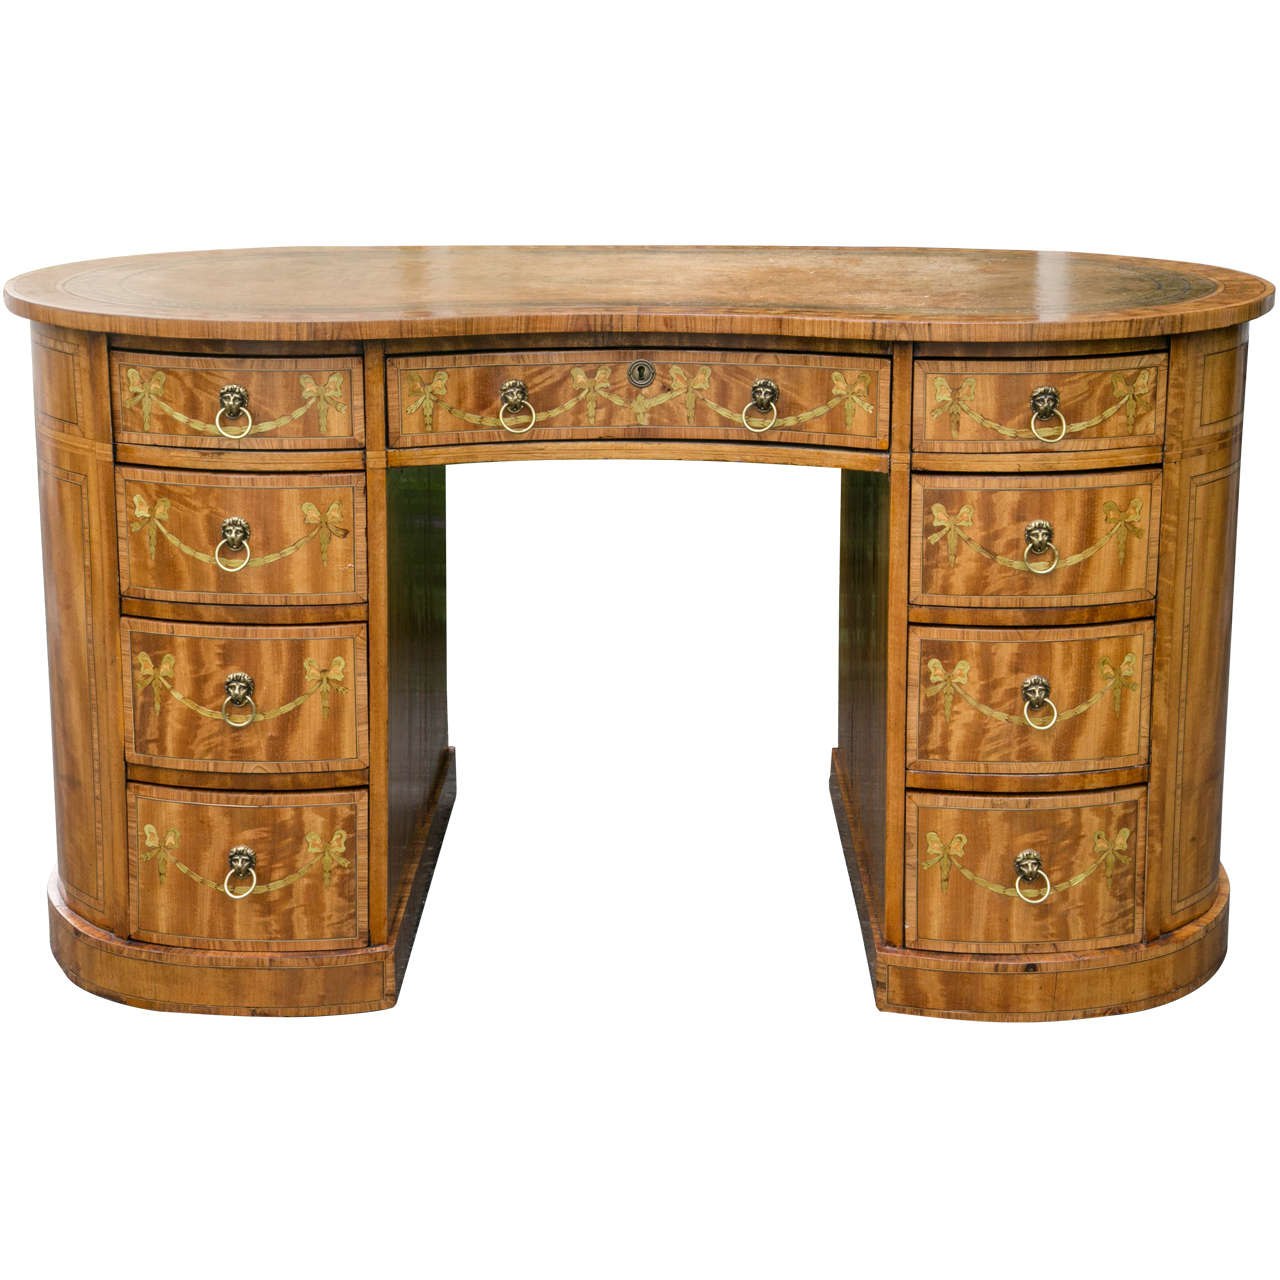 Edwardian kidney shaped desk for sale at 1stdibs for Kidney desk for sale